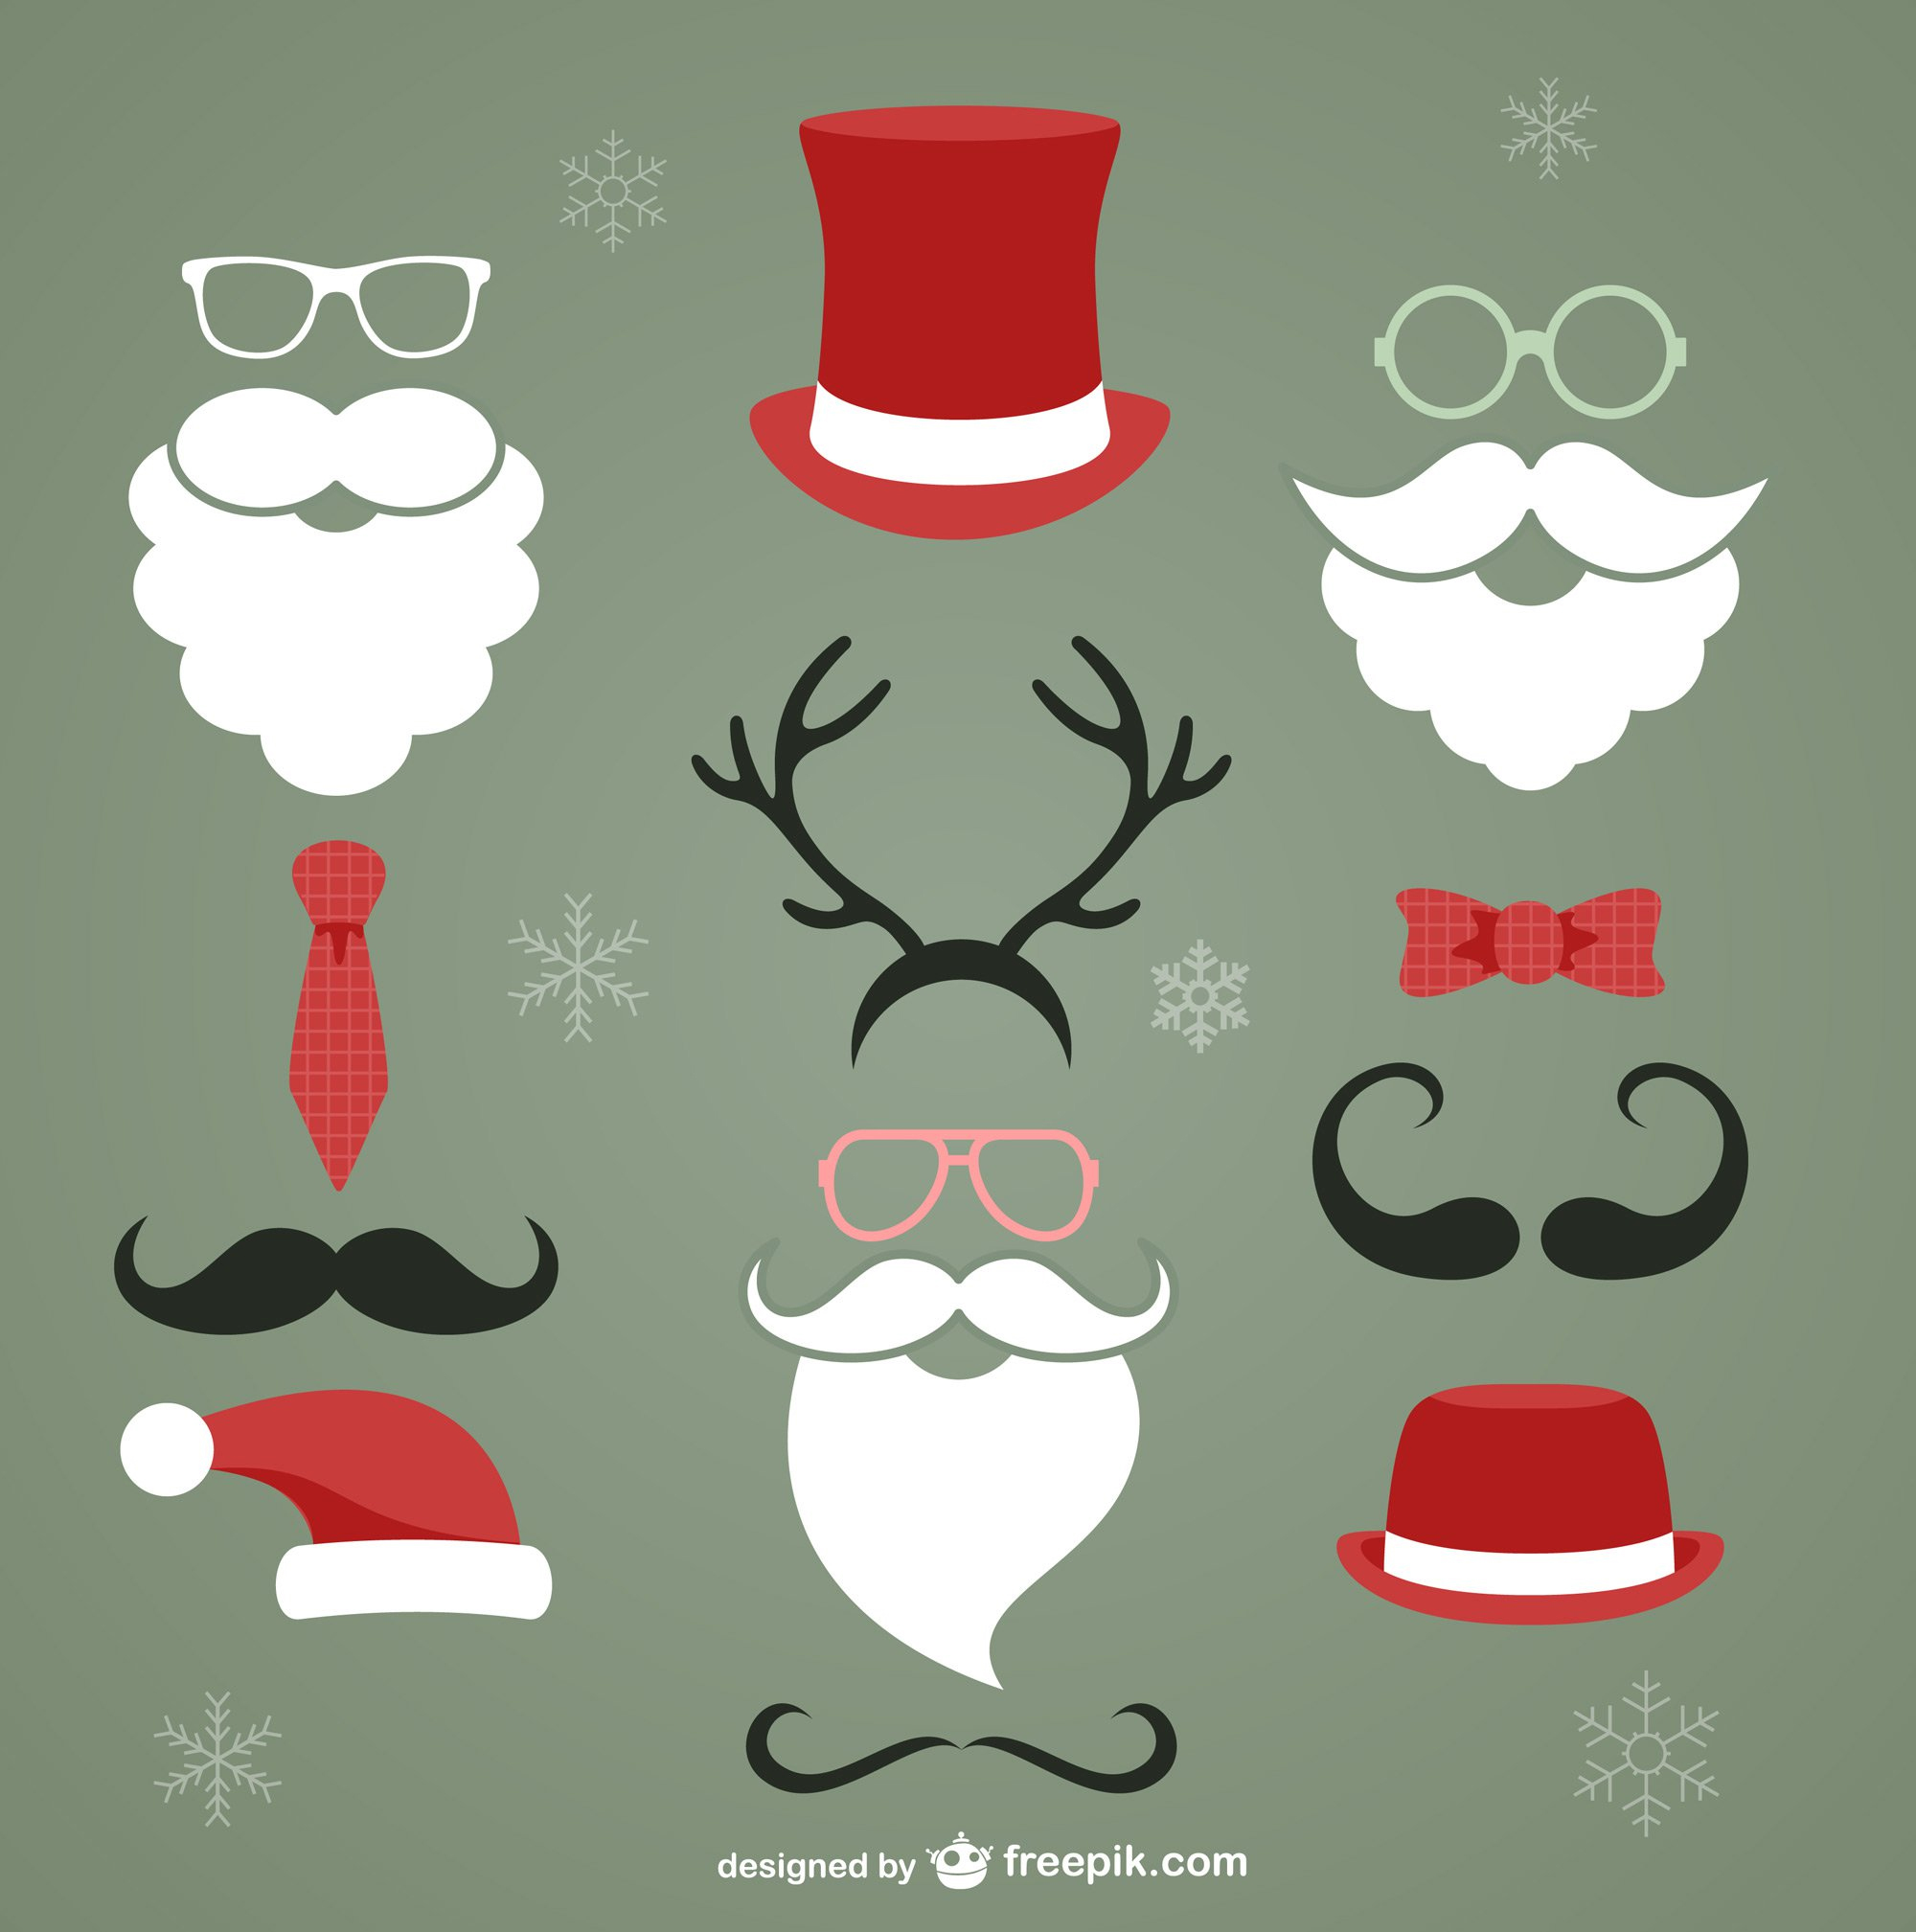 Latest Free Christmas Graphic Resources For Designers.